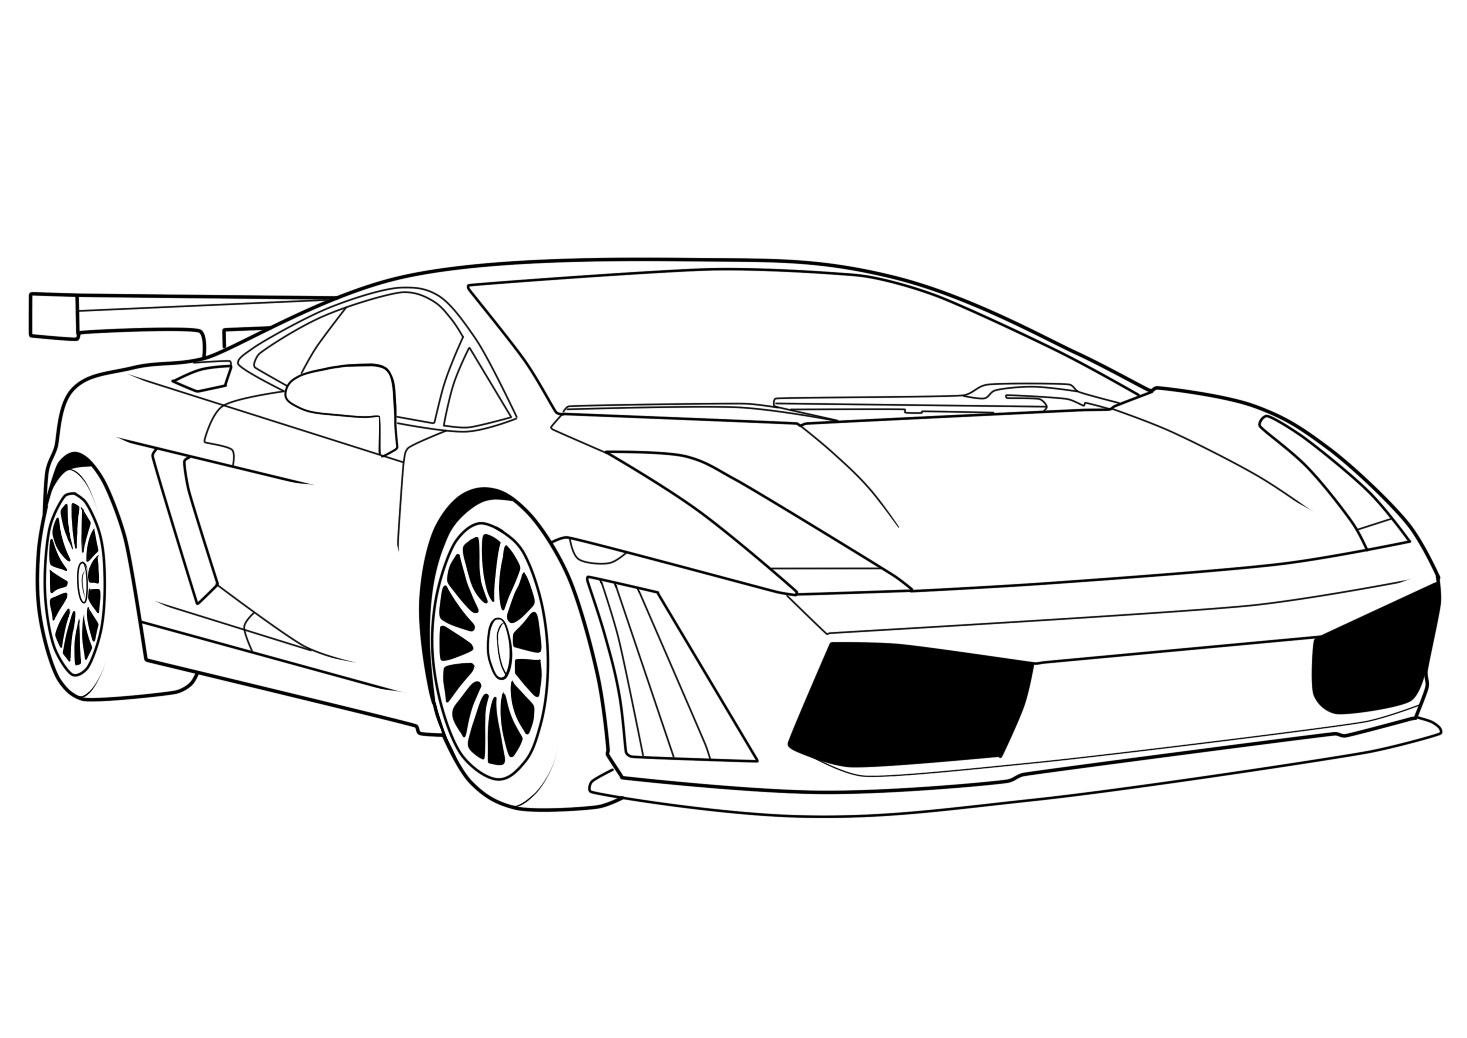 cars pictures to colour 10 car coloring sheets sports muscle racing cars and colour cars pictures to